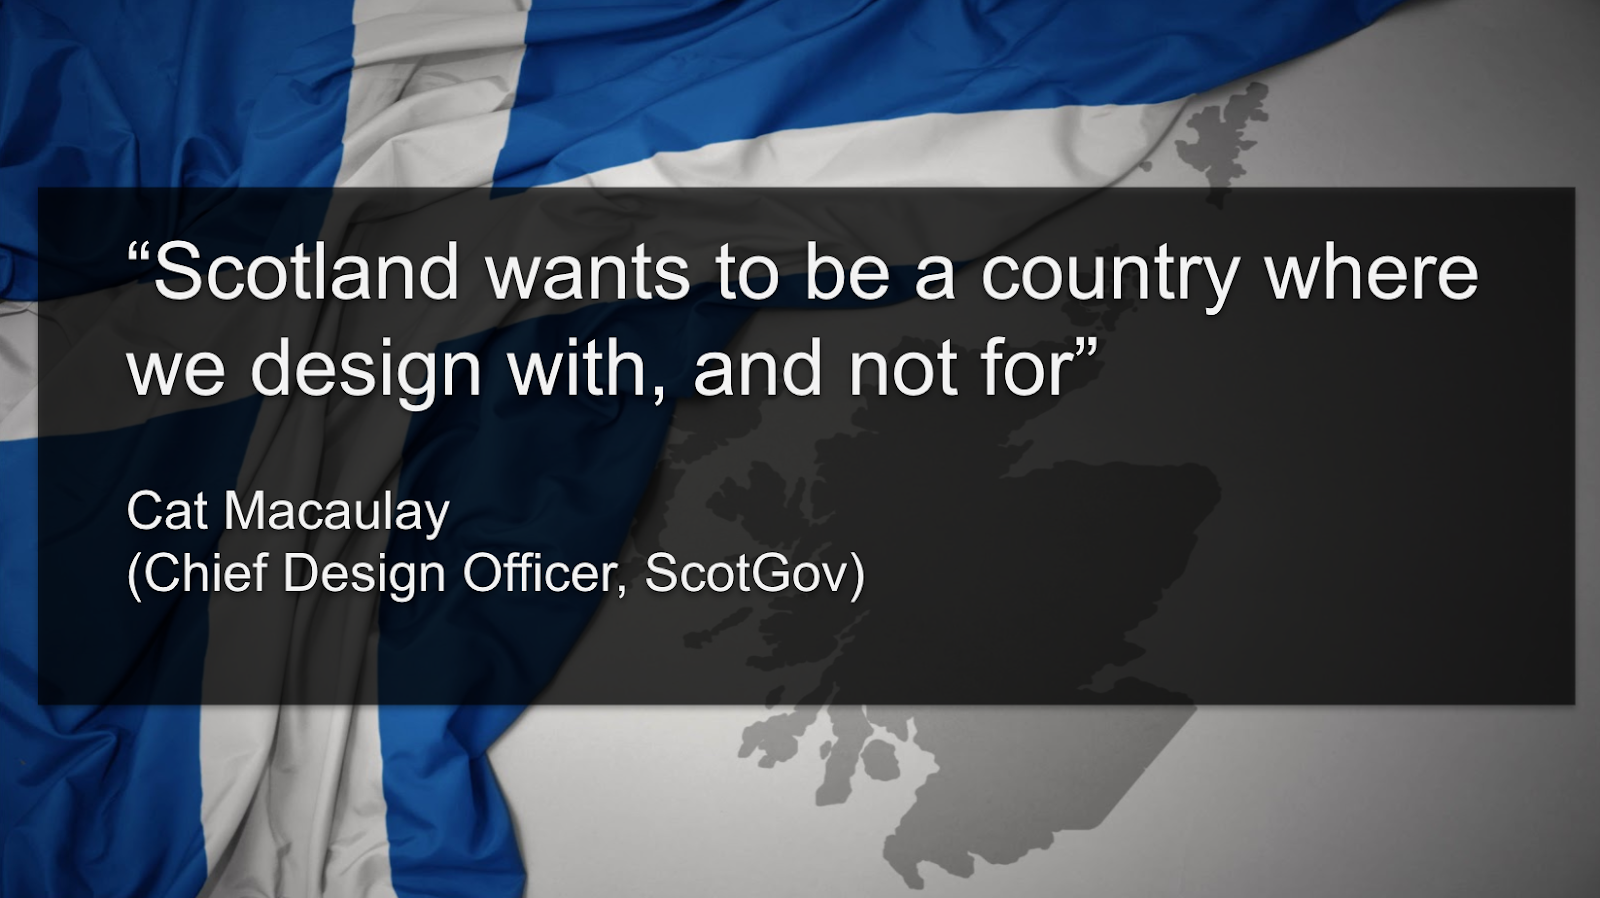 Quote that Scotland desires to be a country that designs with not for people